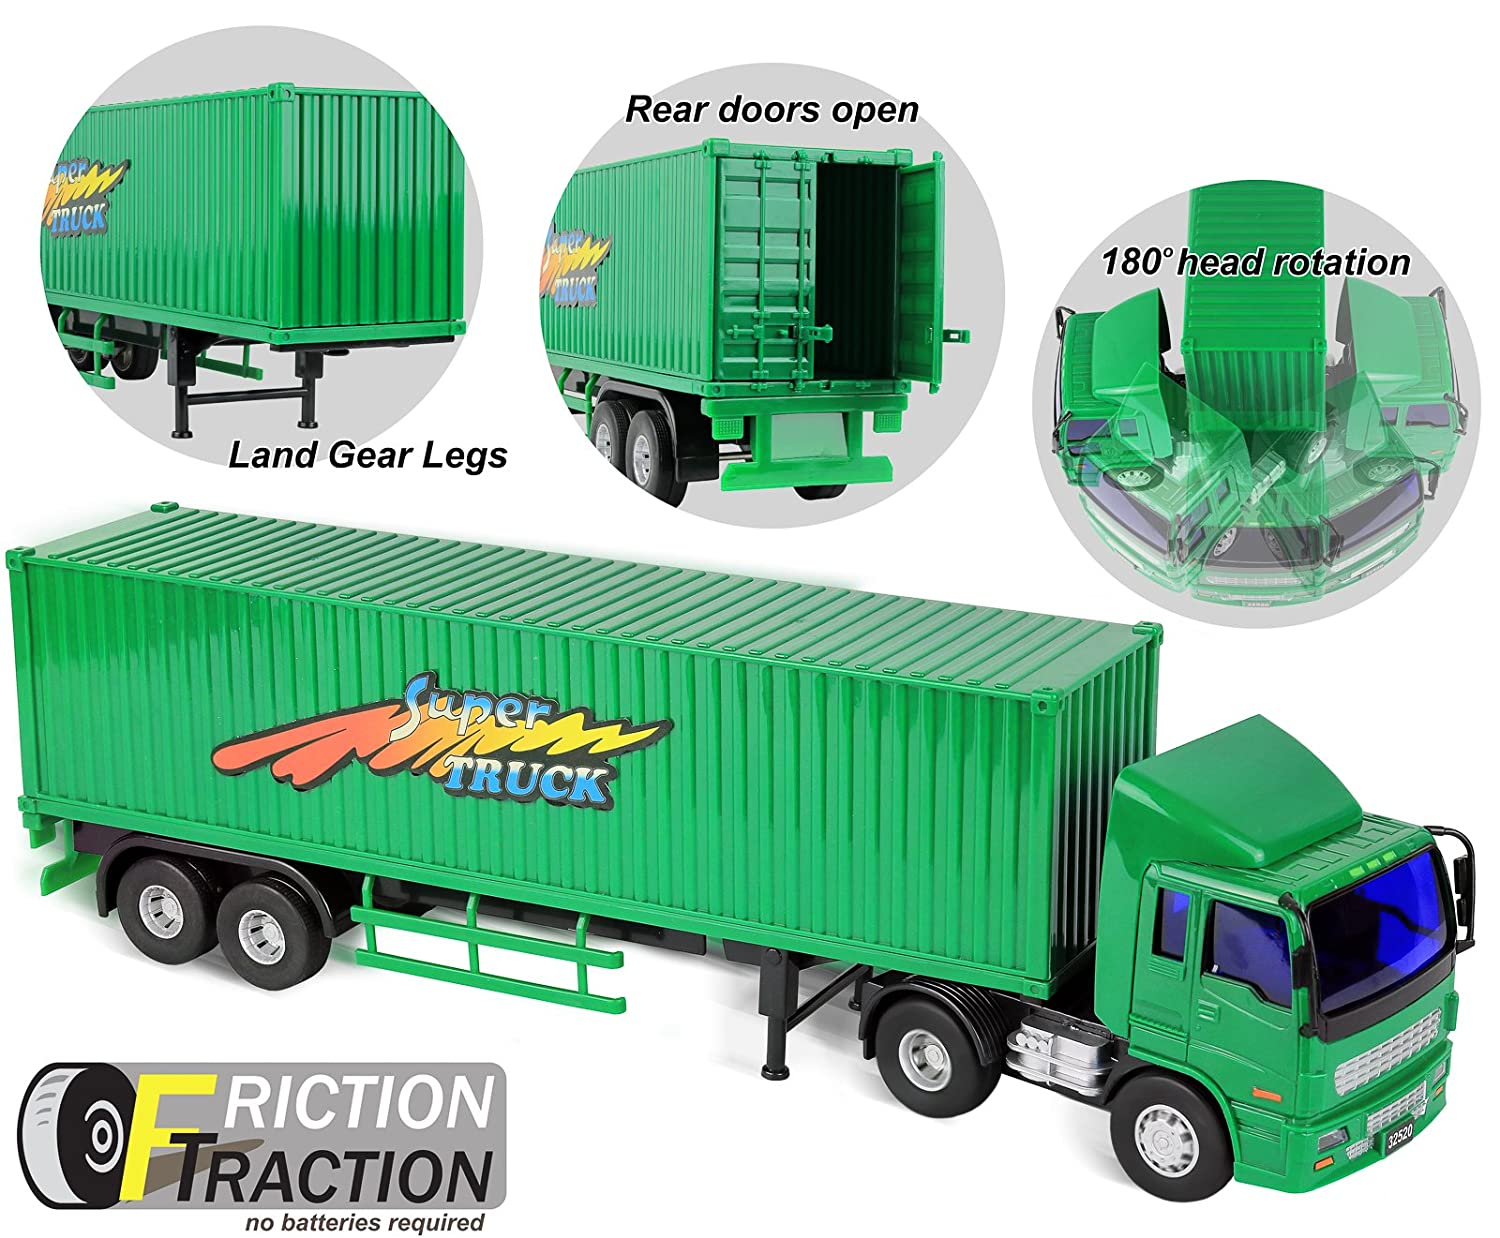 Click N Play Friction Powered Tractor Trailer Truck Toy Vehicle for Kids